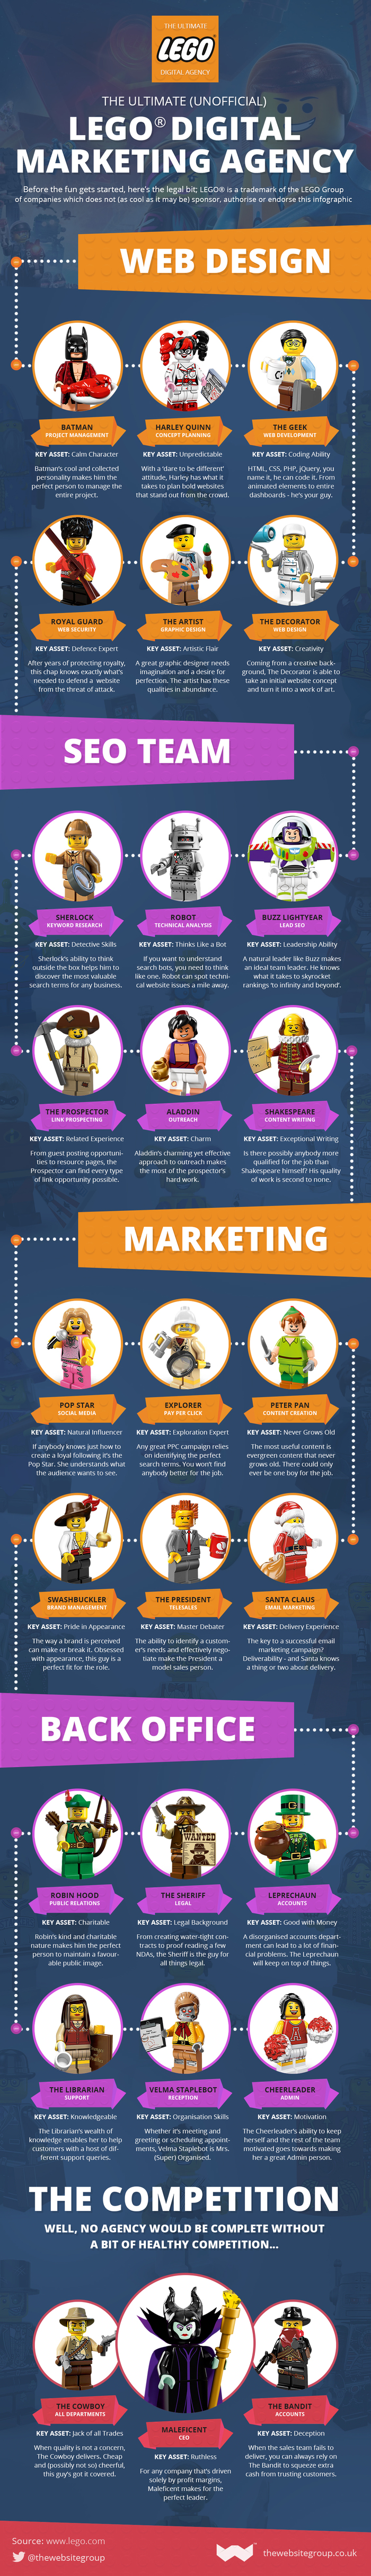 Building Your Marketing Dream Team [Infographic]